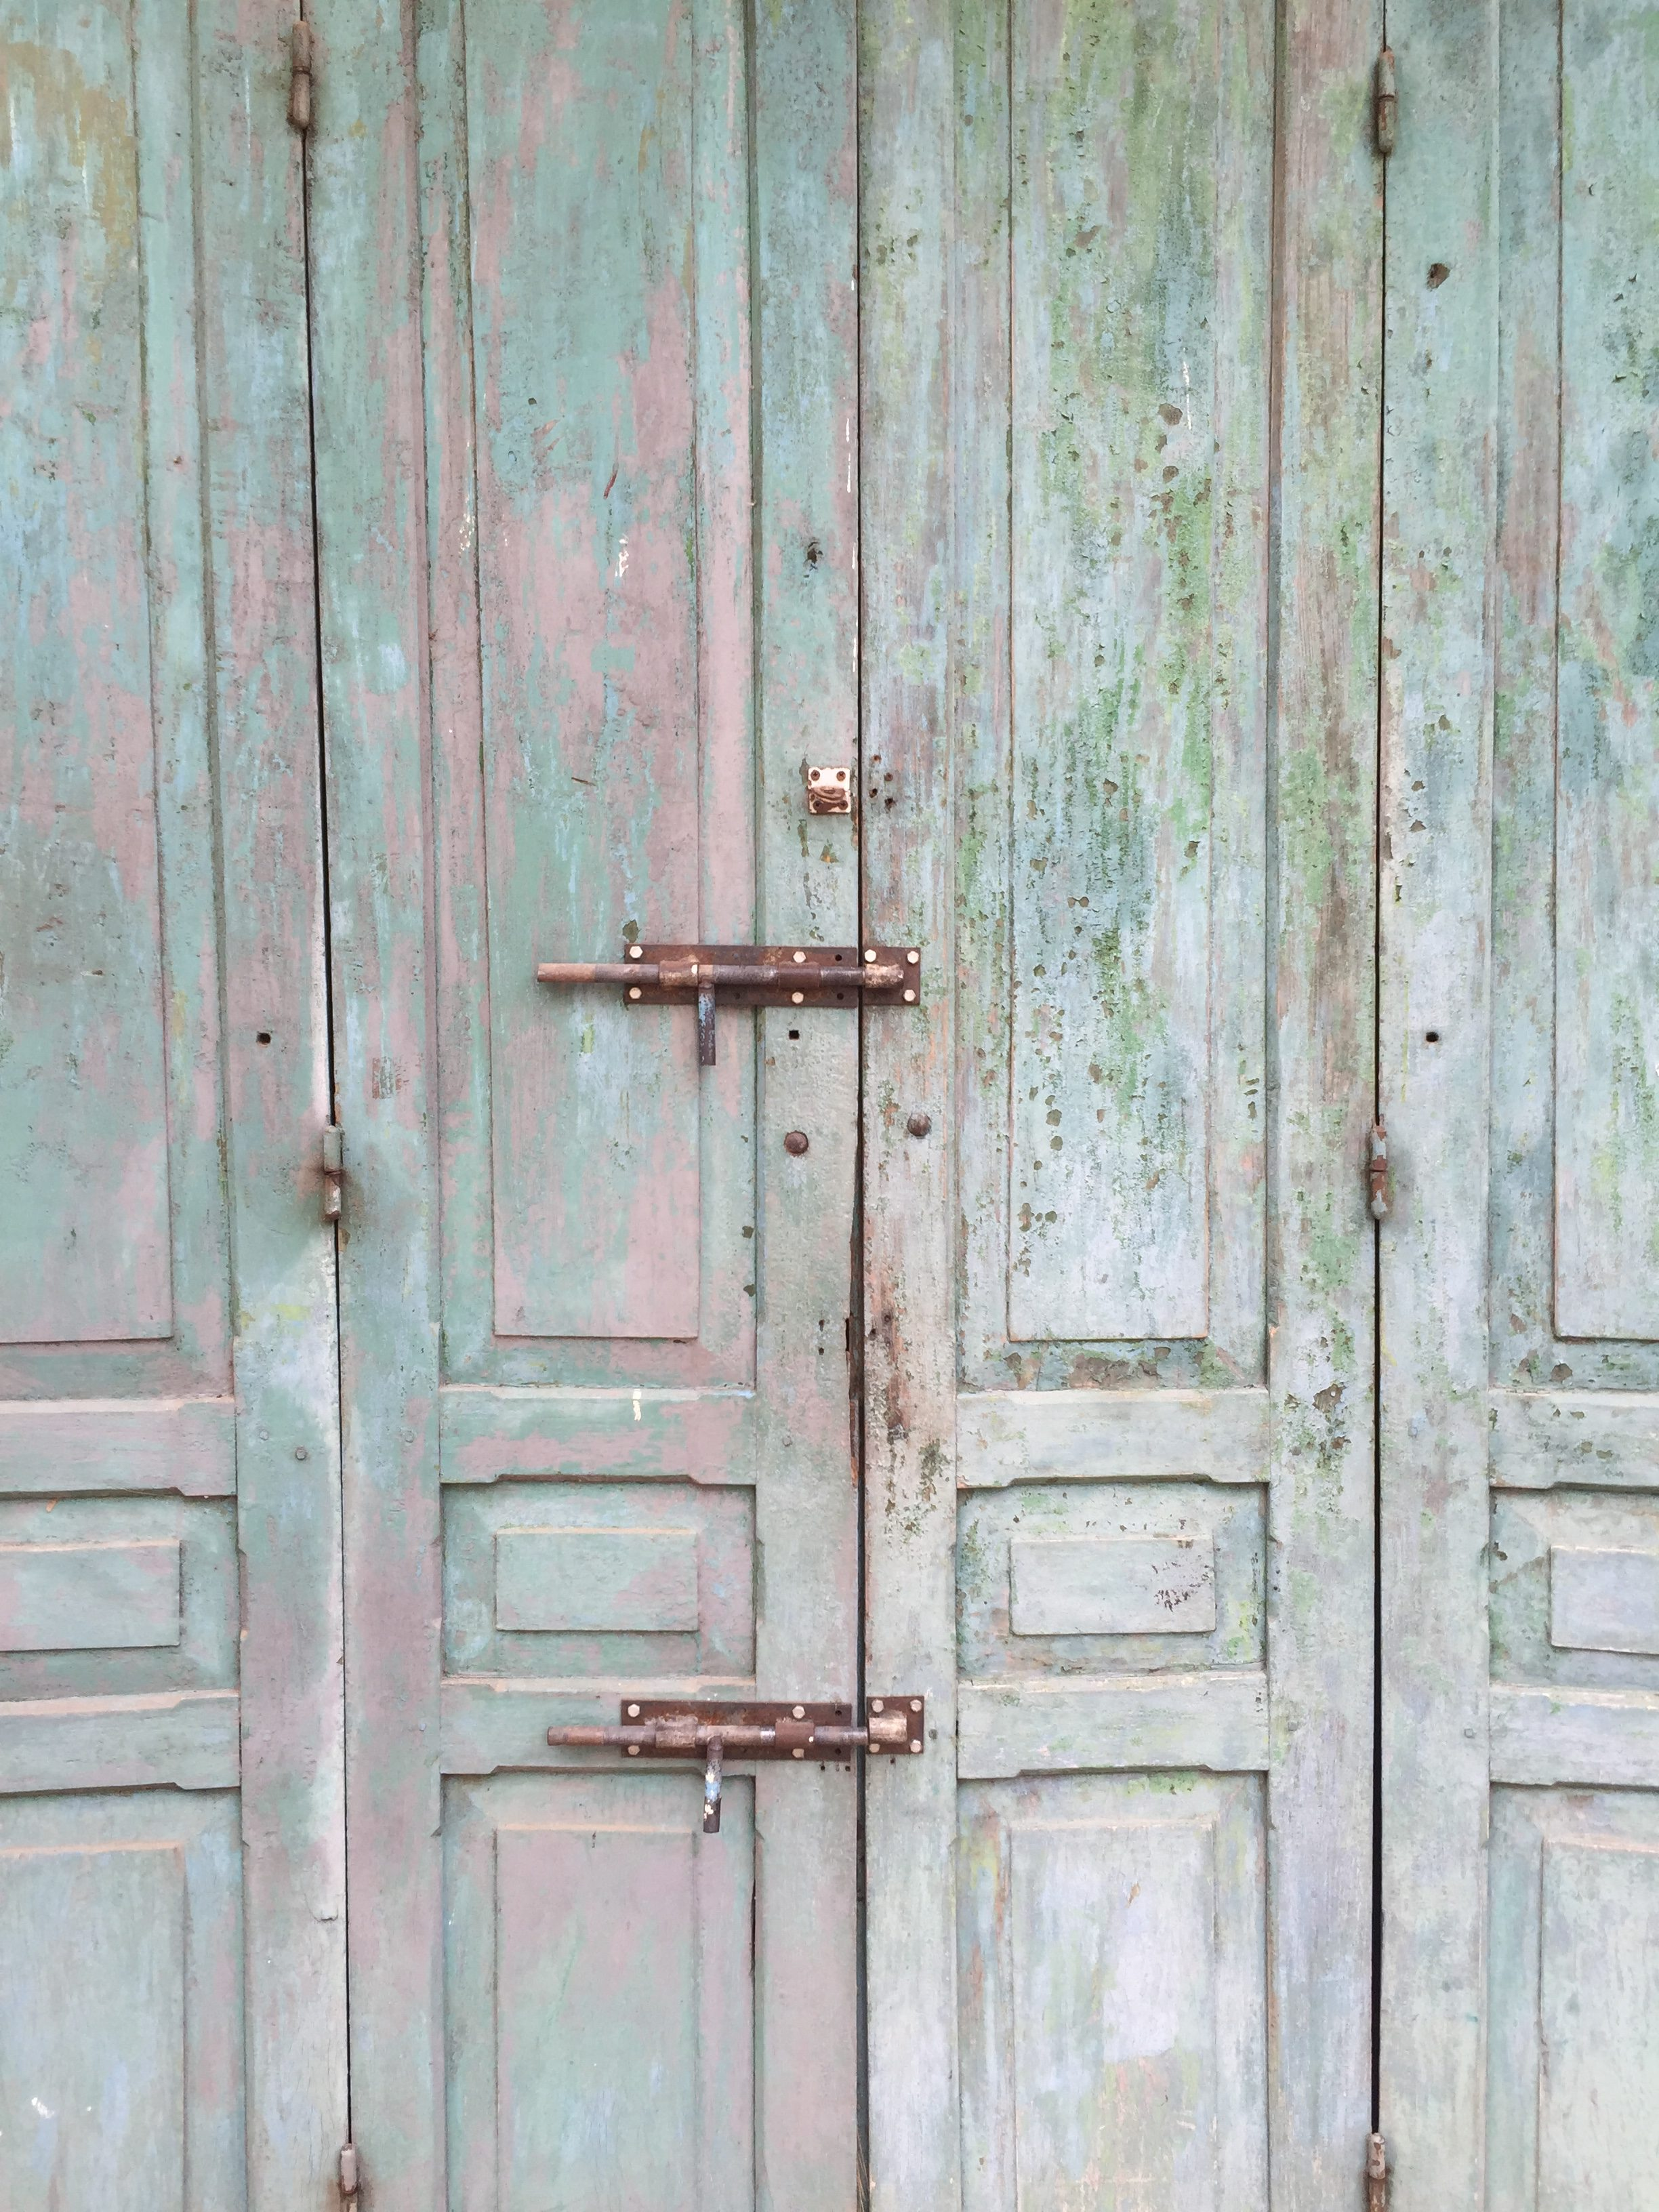 Architectural Salvage Shop Doors Luang Prabang Laos Asia Antiques Buying Tours with The Antiques Diva